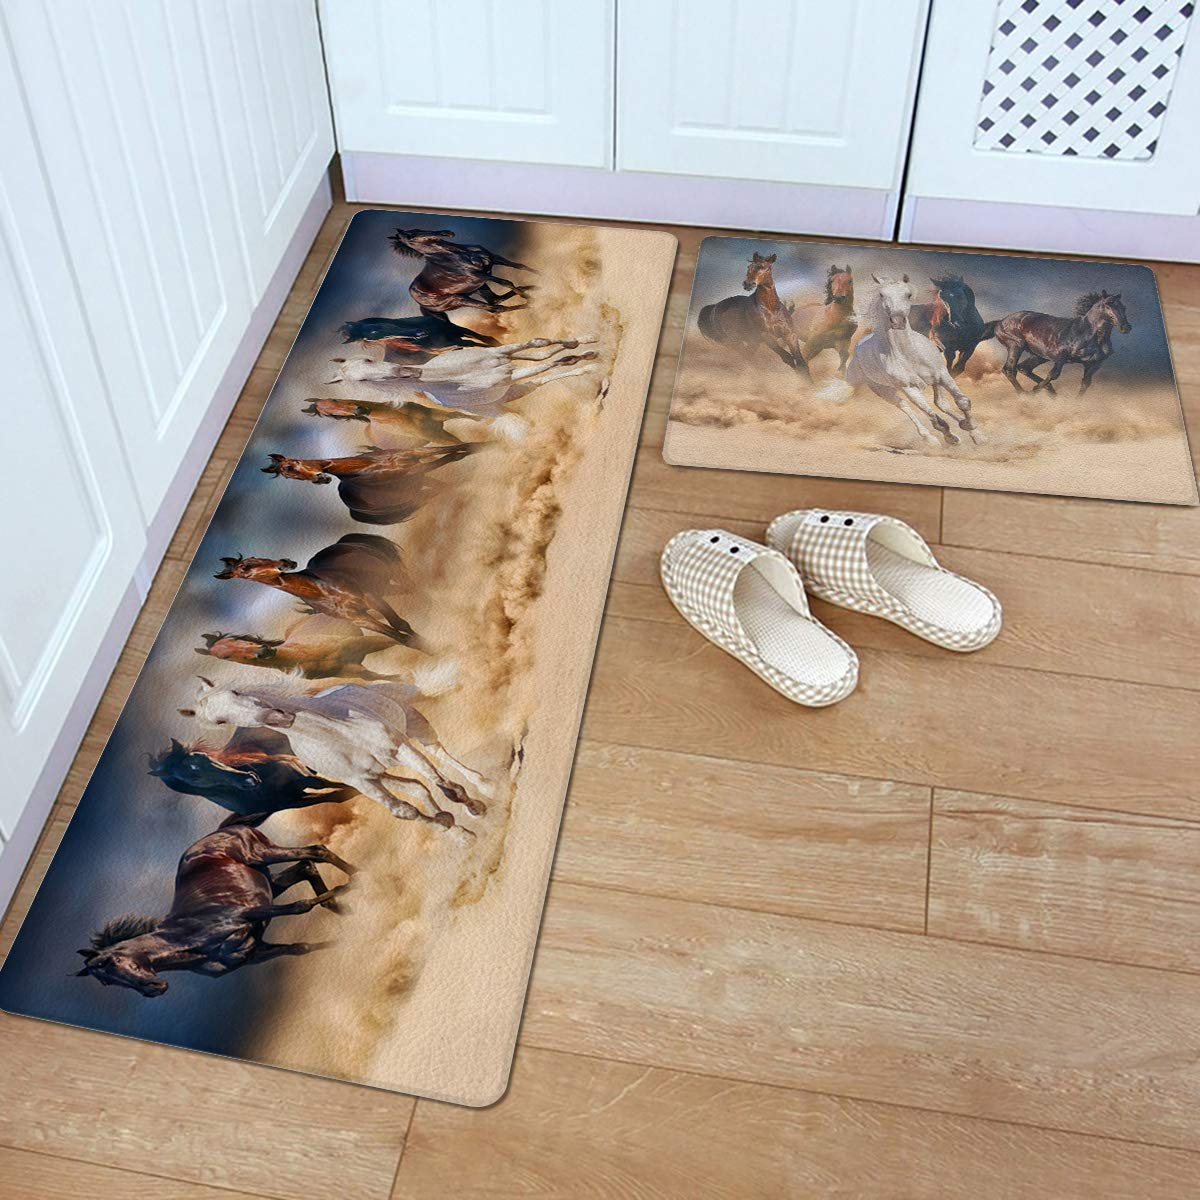 KRWHTS Kitchen Mat Set 2 PCS 16X24in(40x60cm)+16X48in(40x120cm) Horses Running in The Desert, Throw Rugs Non-Slip All-Purpose Carpet for Bedroom Kitchen Home Decorate